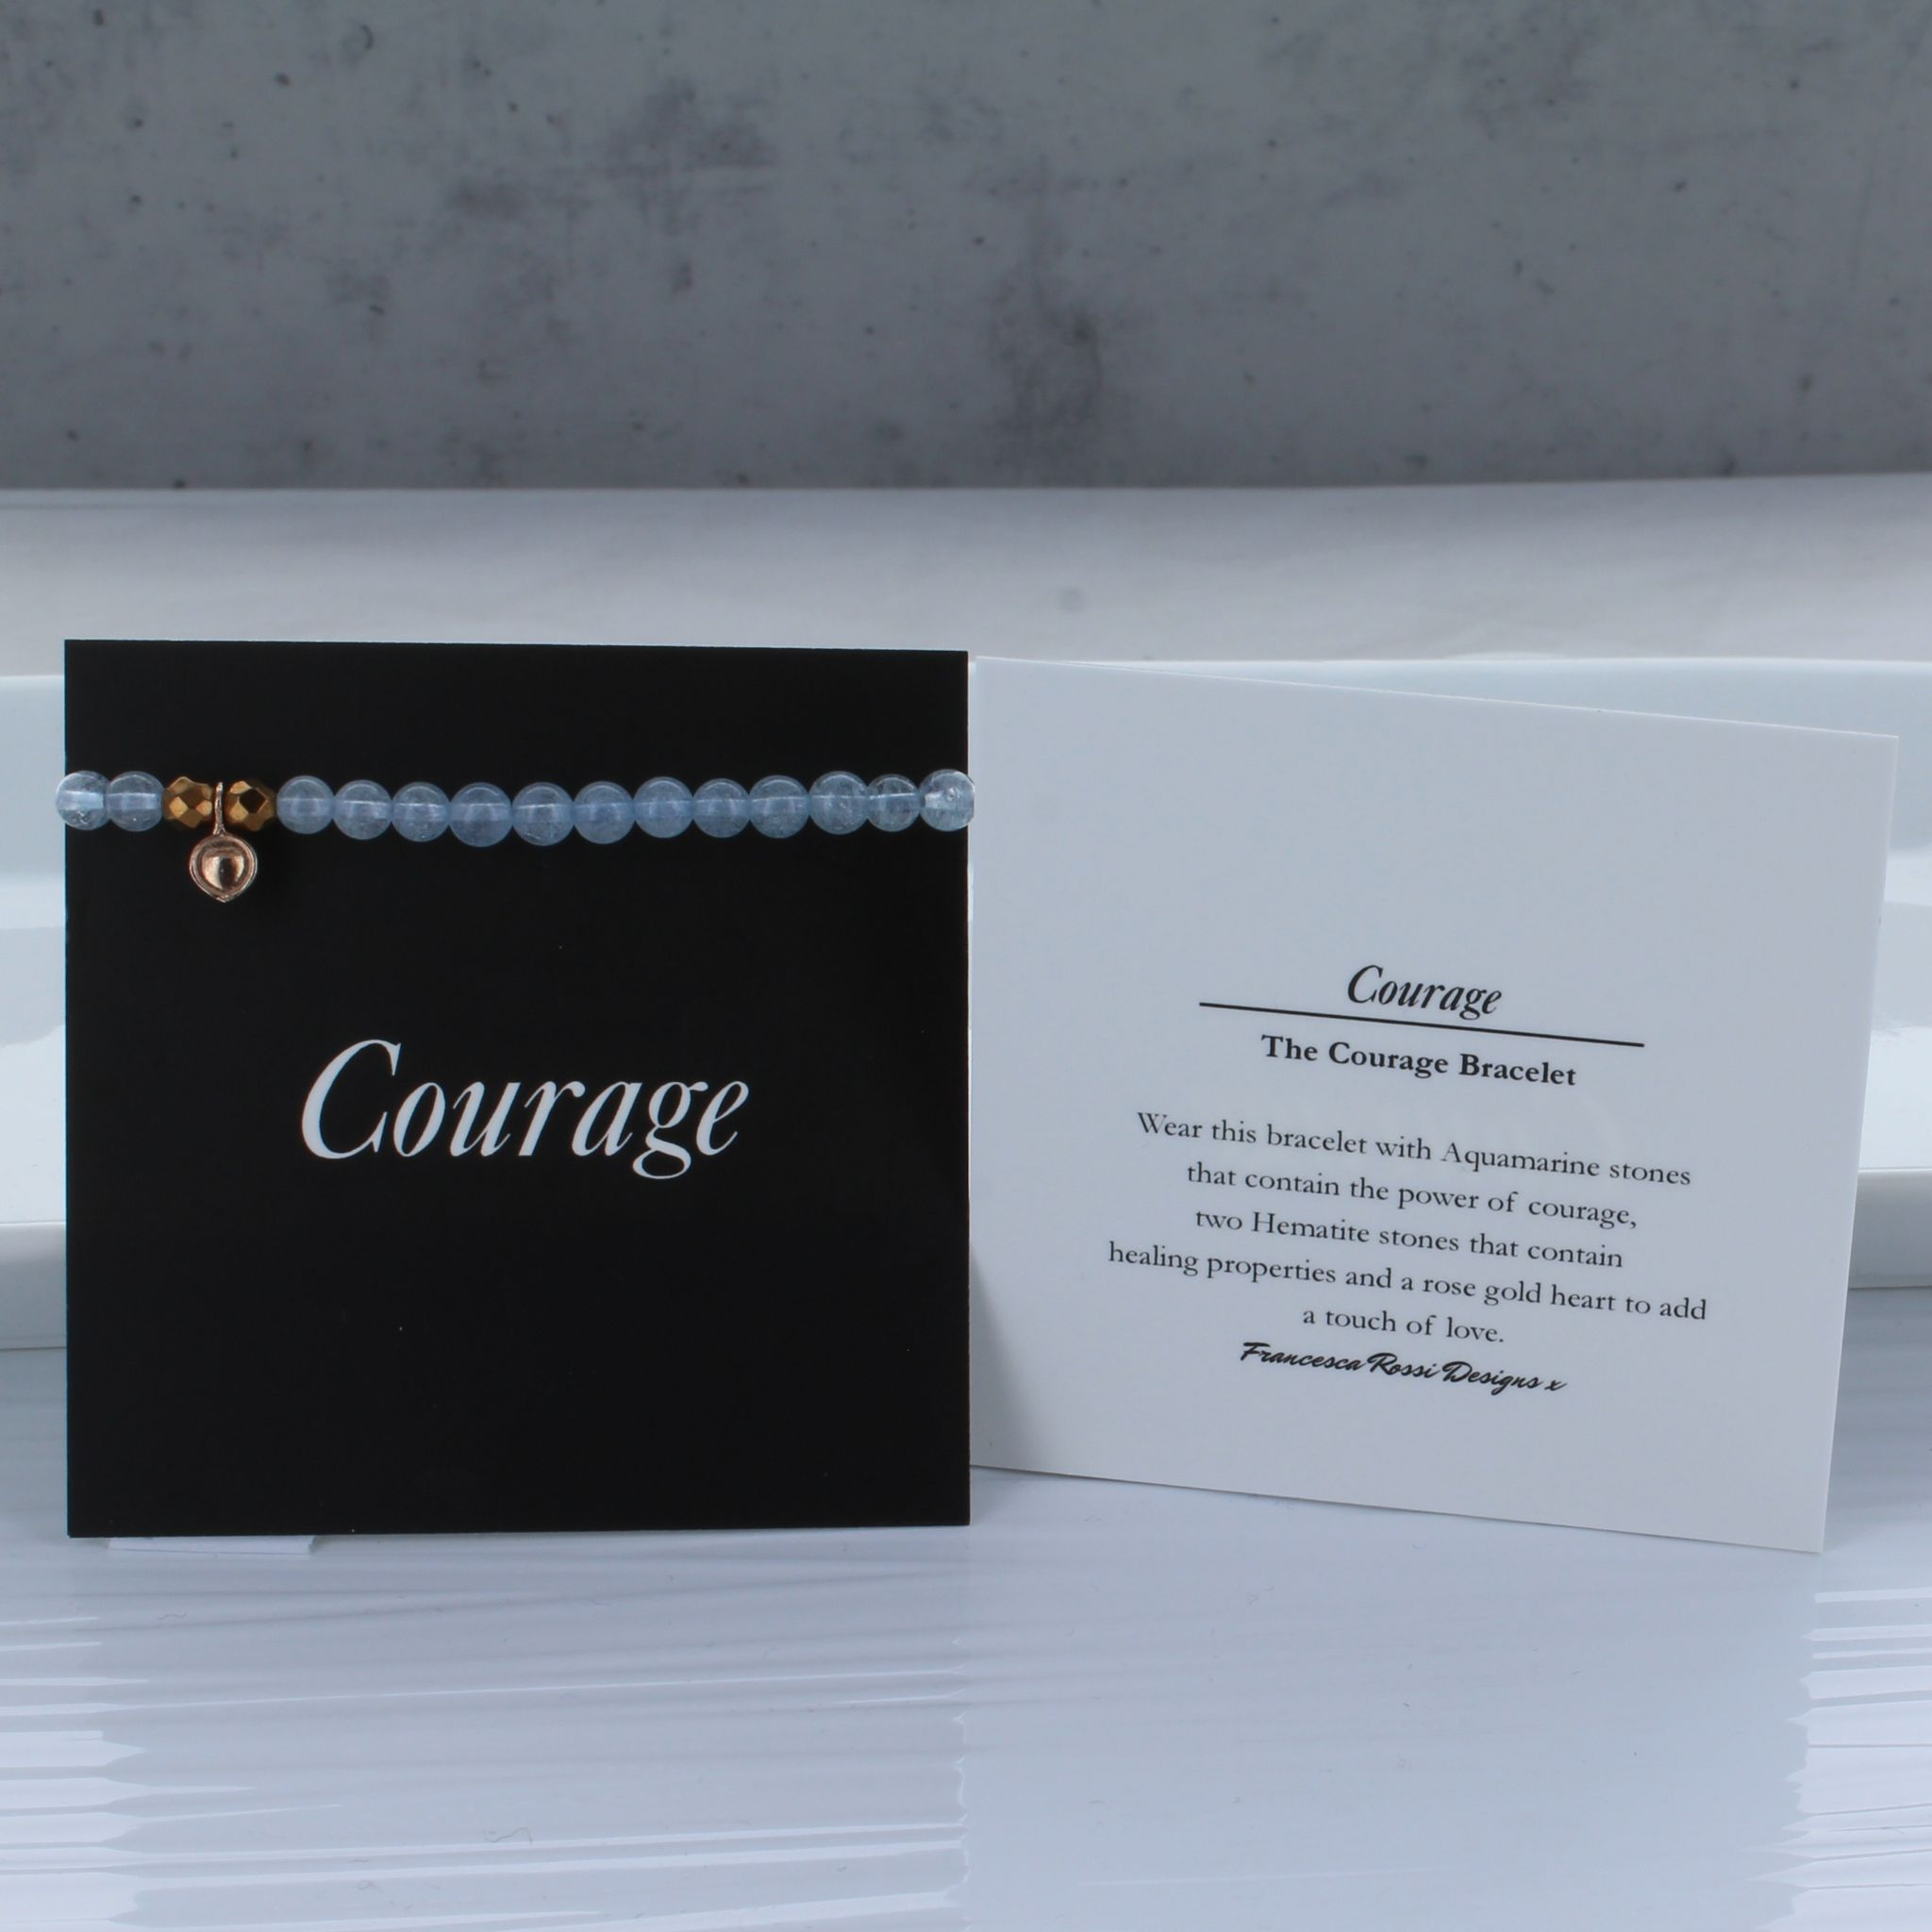 eden products in ministry wrapped wrappedincouragebracelet courage bracelet